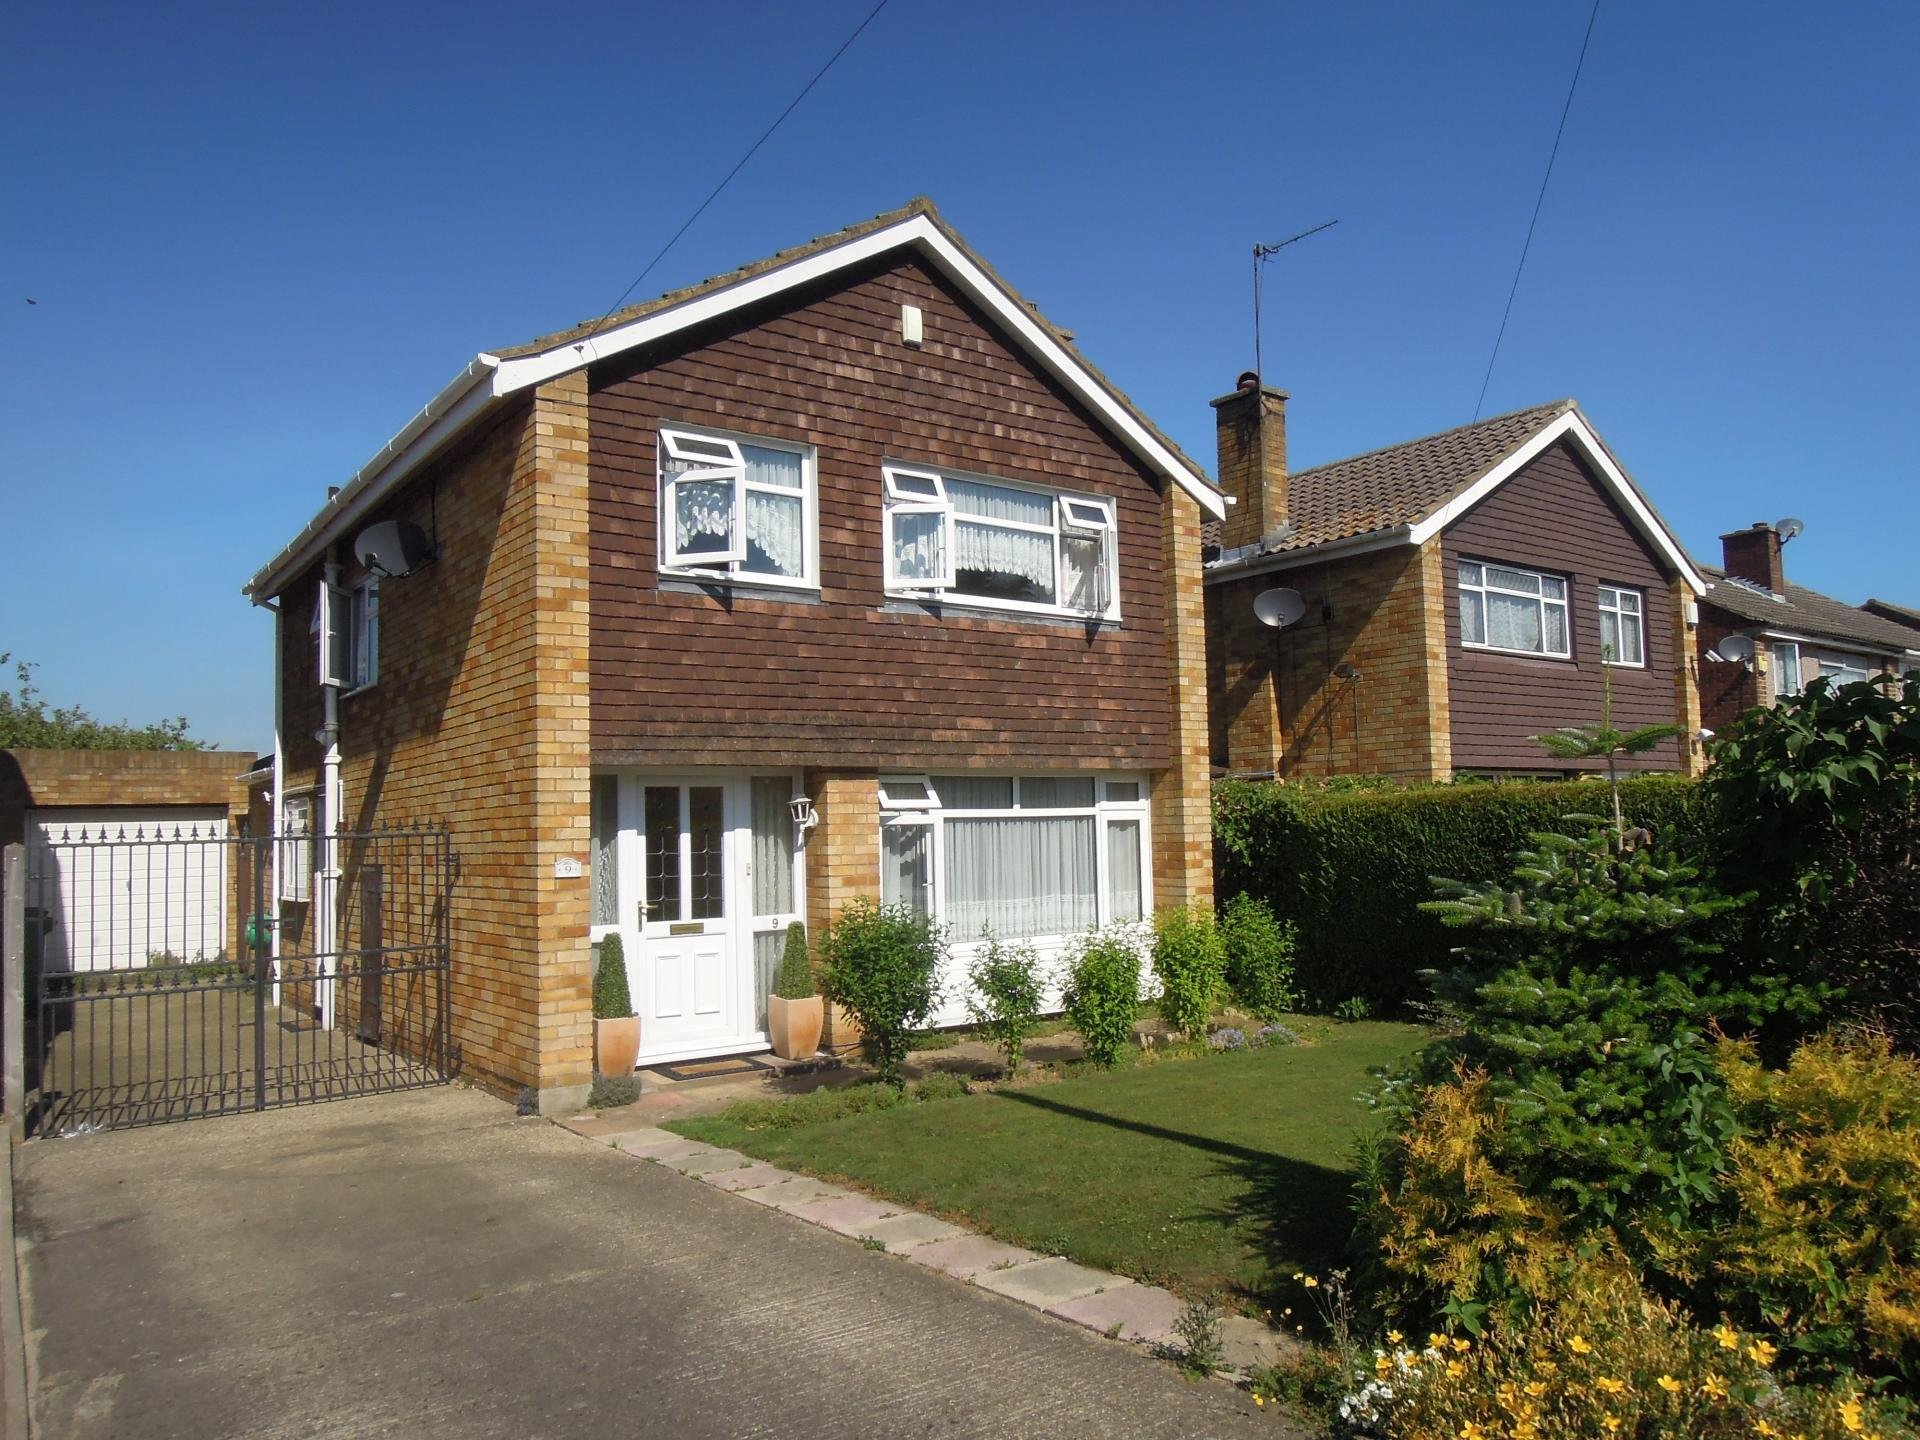 Best 3 Bedroom House For Sale In Slough With Pictures